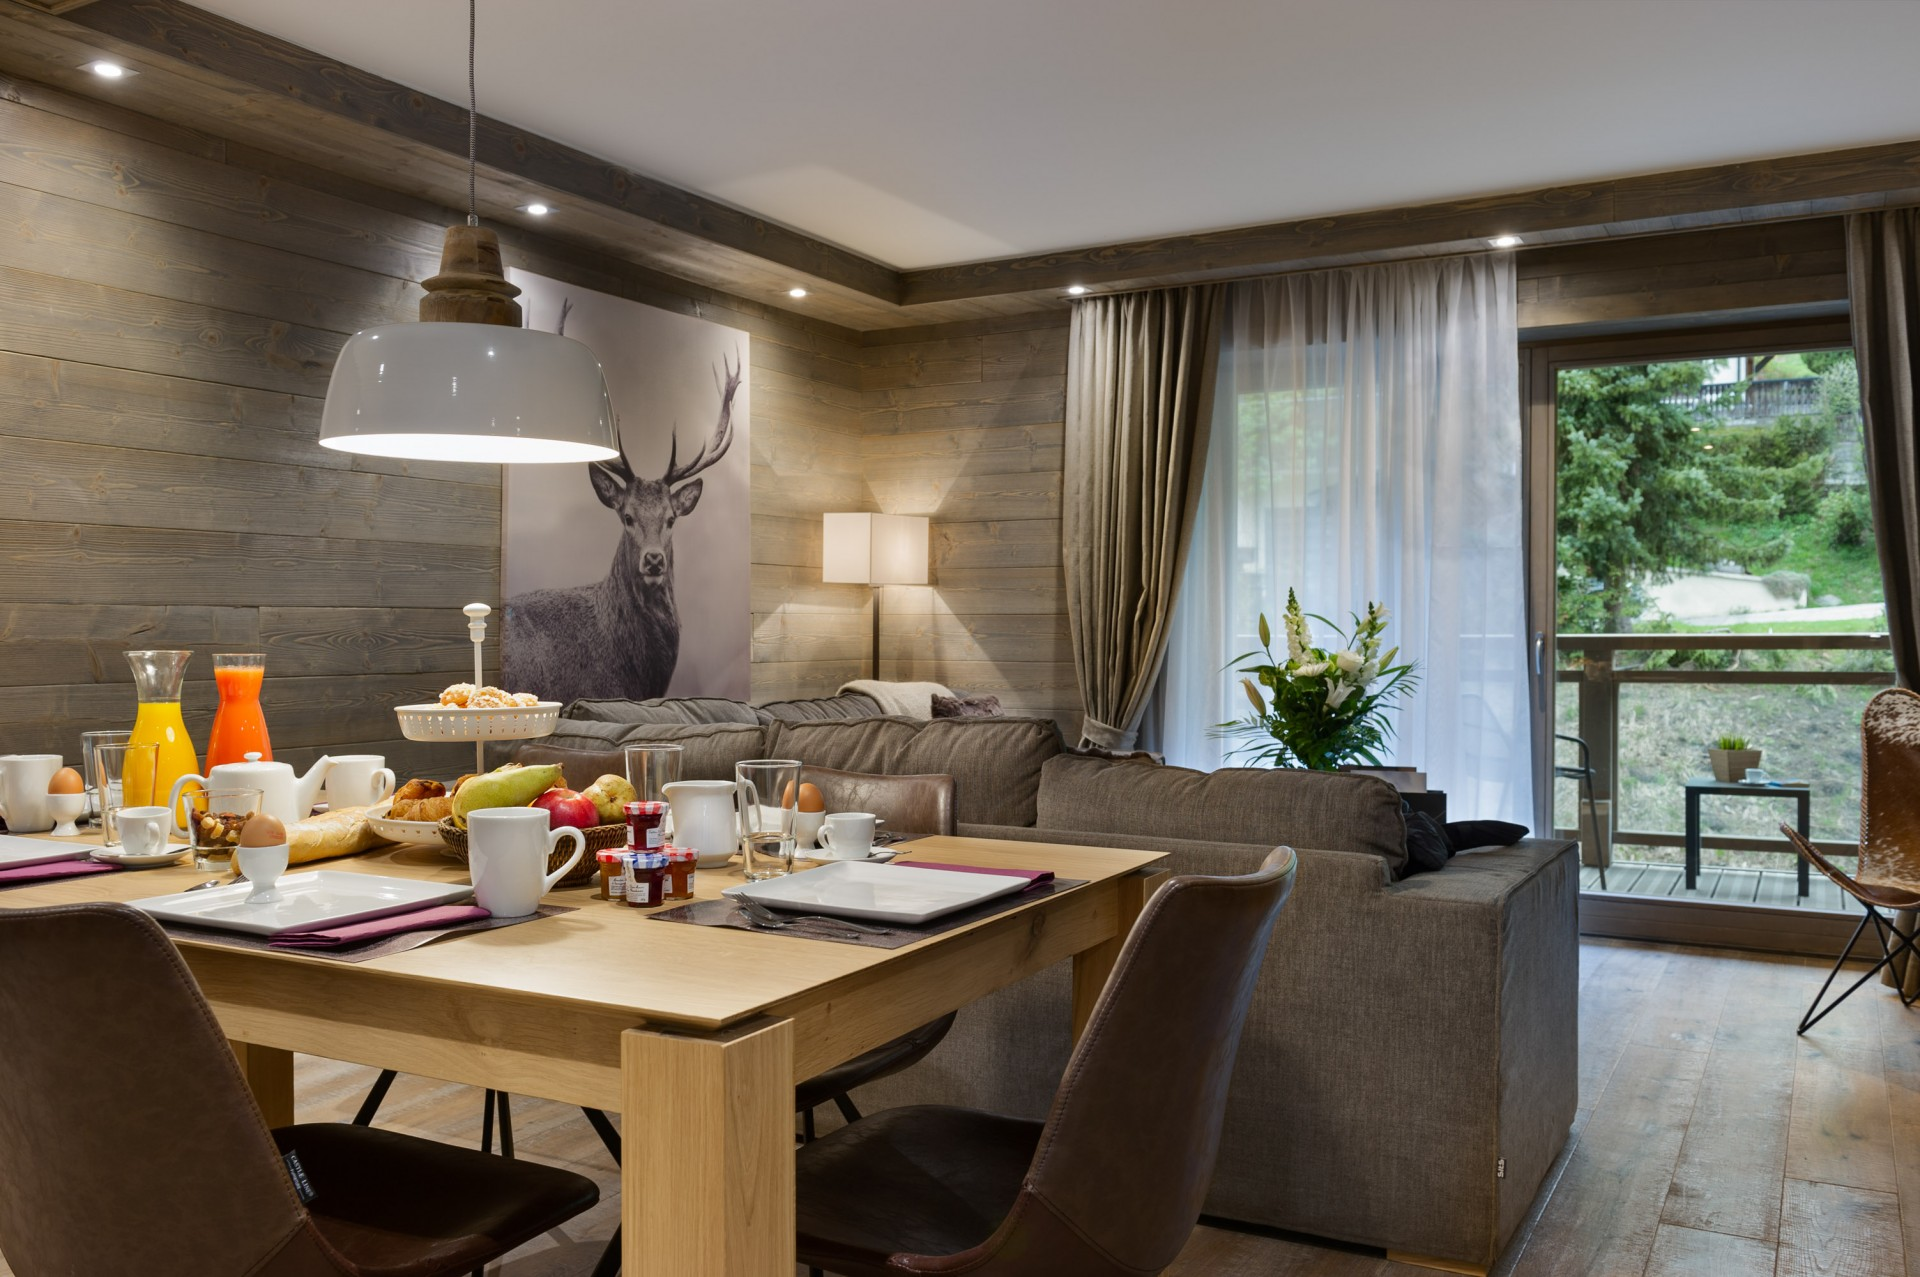 Les Gets Location Appartement Luxe Anroche Salle A Manger 2